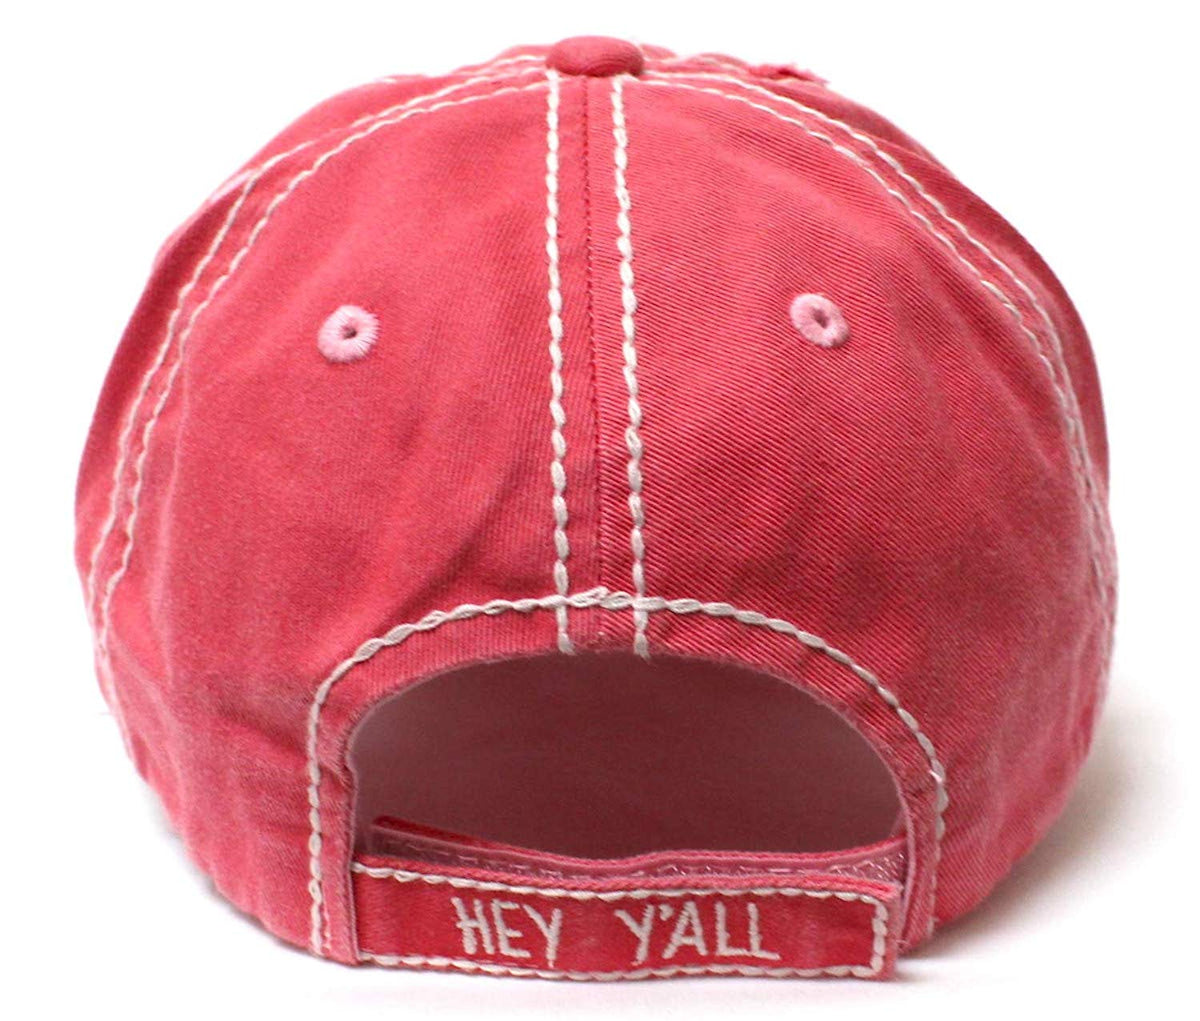 CAPS 'N VINTAGE New!! Royal Pink Hey Y'all Velvet Patch Emroidery Hat w/Heart Detail - Caps 'N Vintage